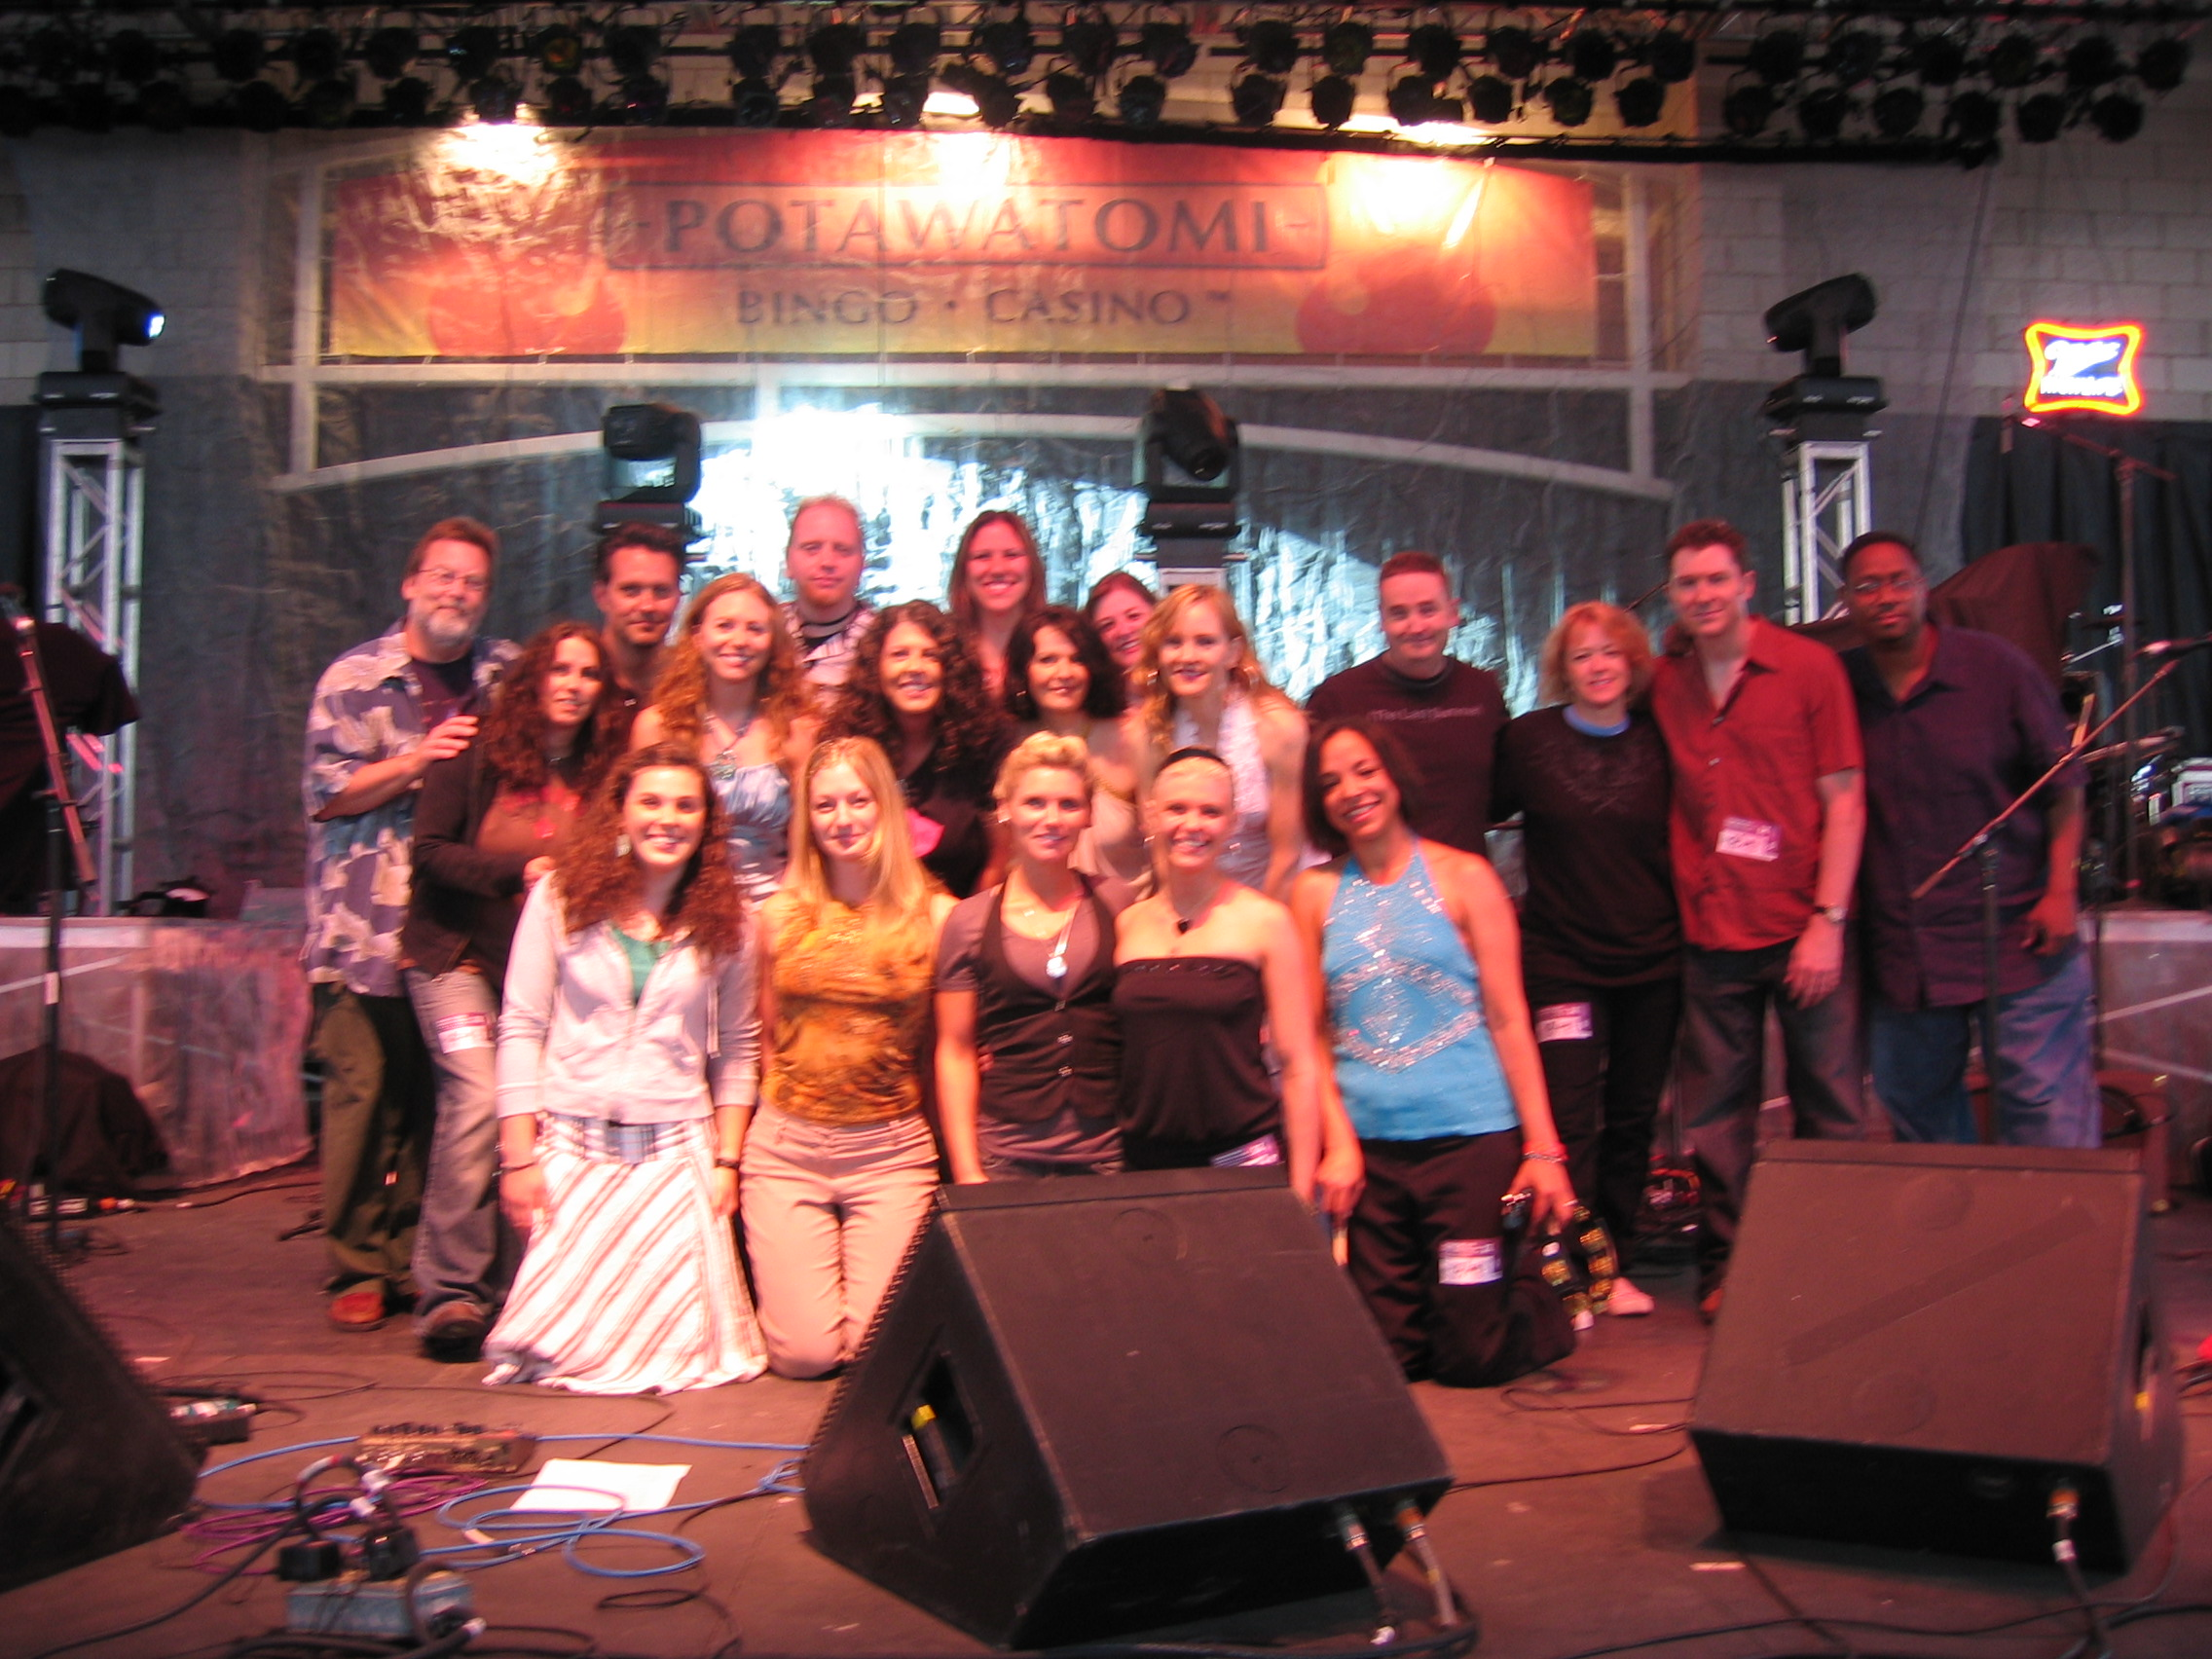 Group pic after the show! (photo: David Pruszka)